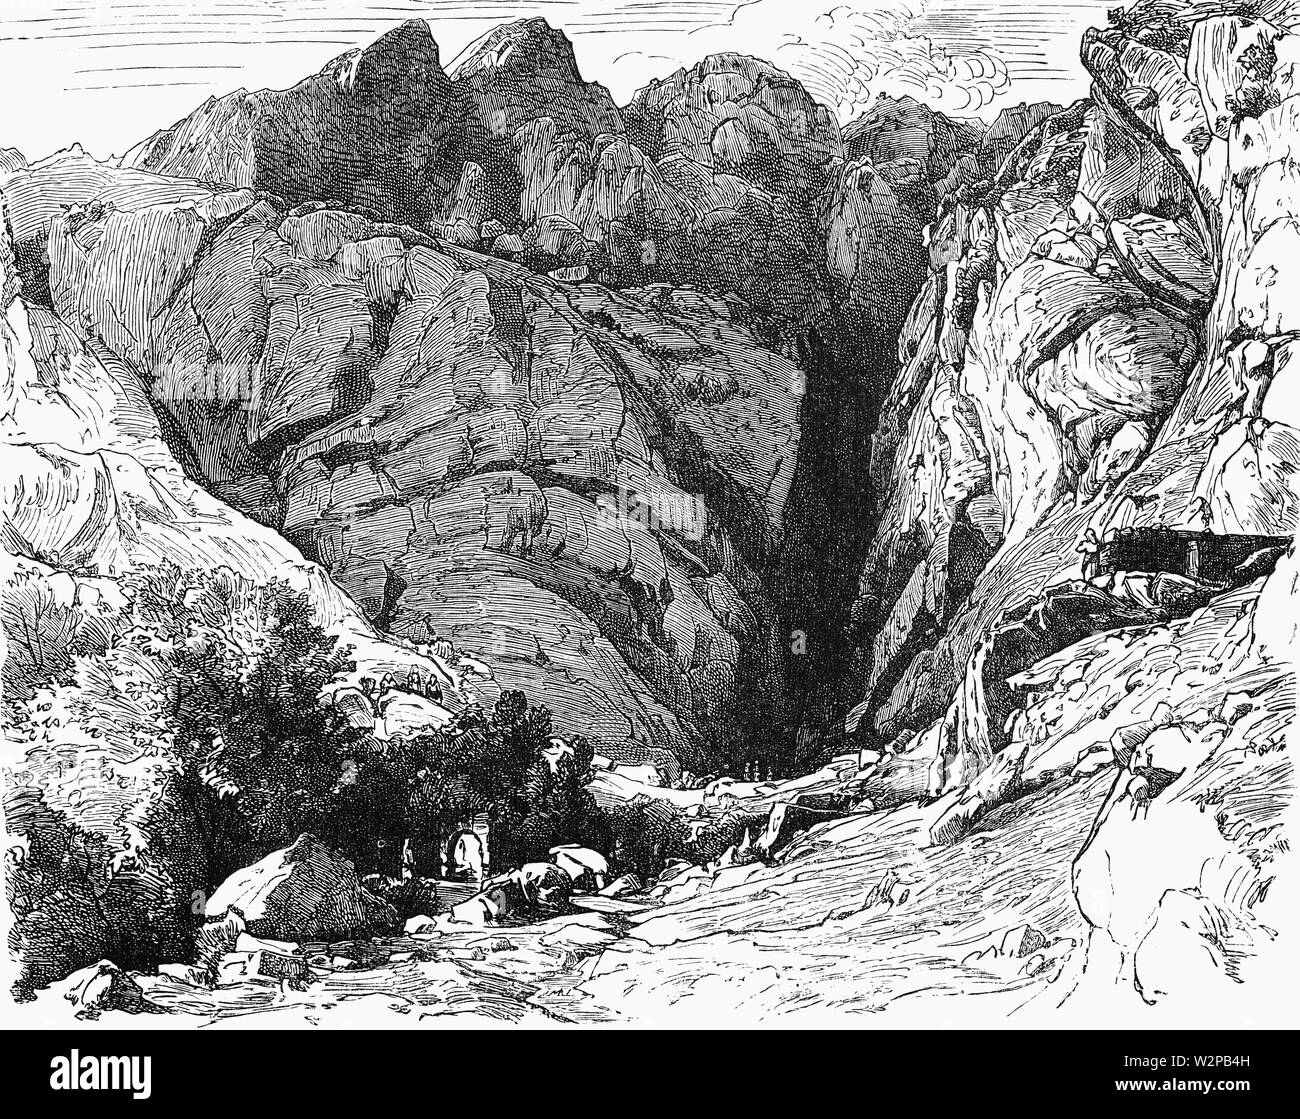 A view of the ravine at Delphi, where the sanctuary was attacked by the Gauls after they overran Macedonia  in 279 BCE . When the Gallic chieftain, Brennus, advanced through Macedonia to Greece he suffered heavy losses while trying to break through the Greek defense at the narrow pass of Thermopylae, on the east coast of central Greece. Eventually he found a way around the pass, but the Greeks escaped by sea. Brennus pushed on to Delphi, where he was wounded in battle and avoided capture by committing suicide. - Stock Image